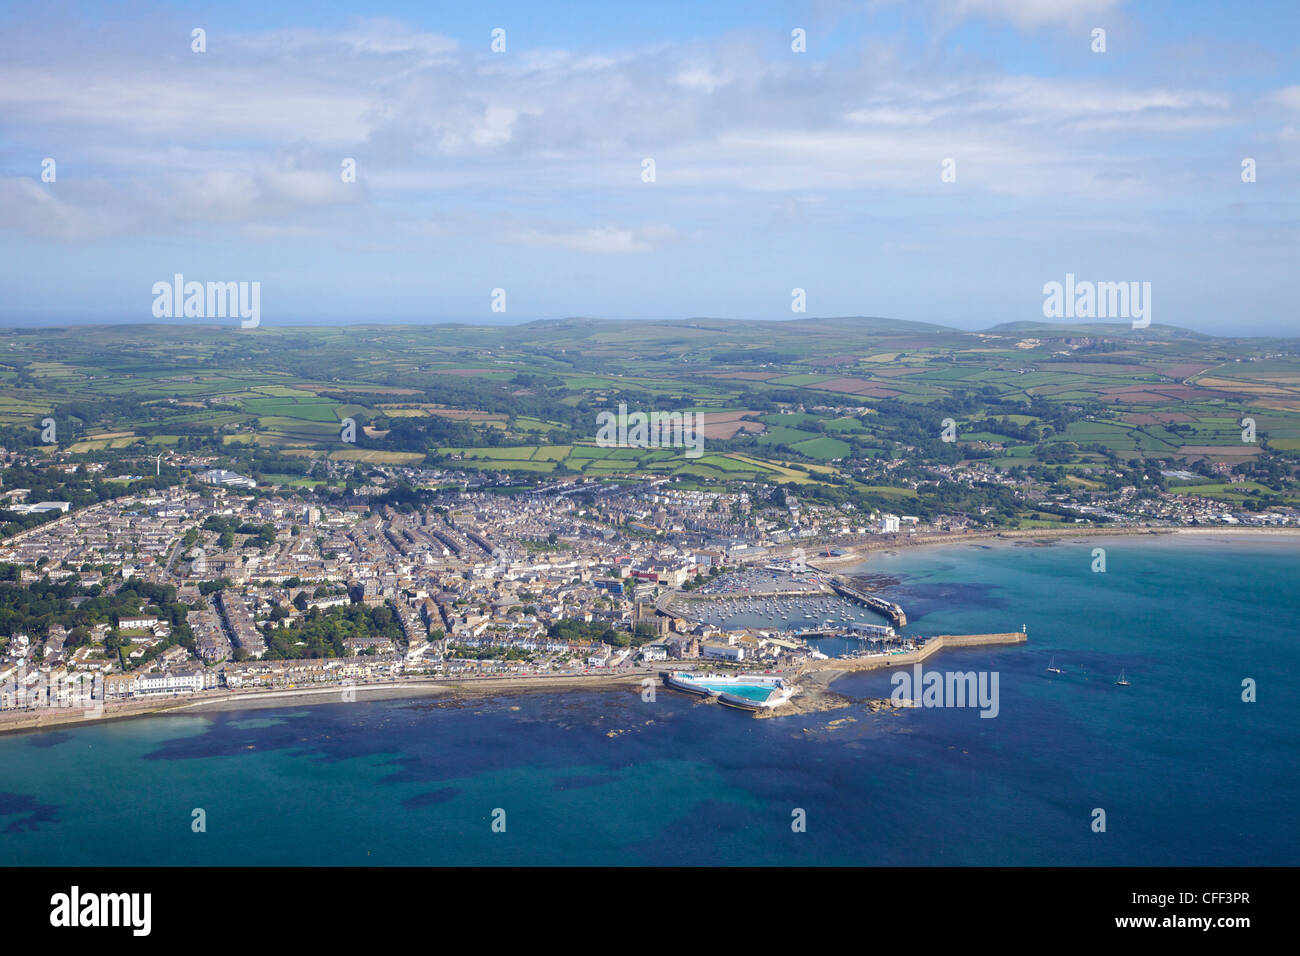 Aerial photo of Penzance harbour, West Penwith, Cornwall, England, United Kingdom, Europe - Stock Image